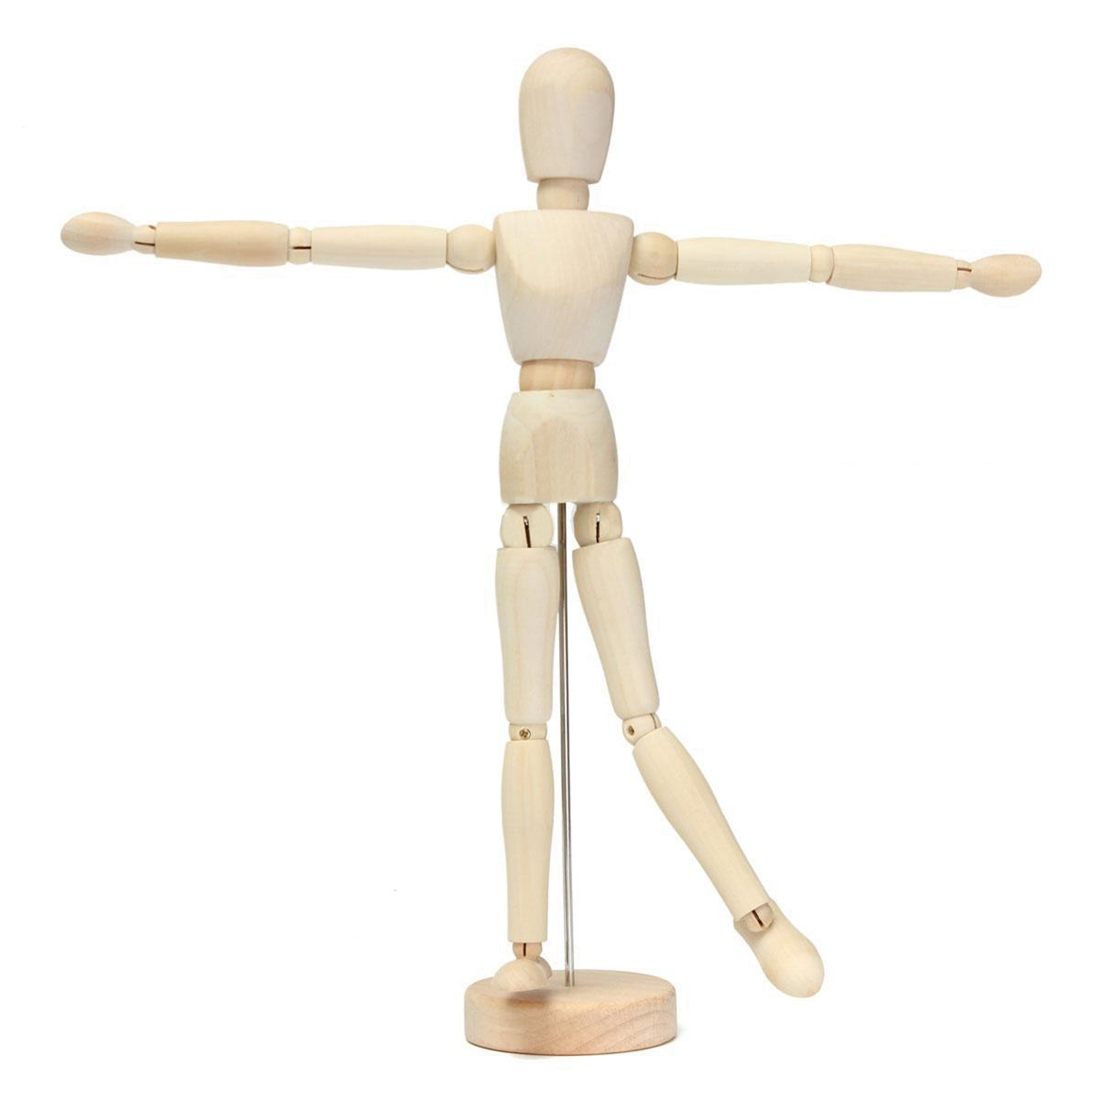 12 artist wooden man mamikin mannequin sketch sketching lay figure new 1pc right left hand wooden model sketching drawing jointed movable fingers mannequin